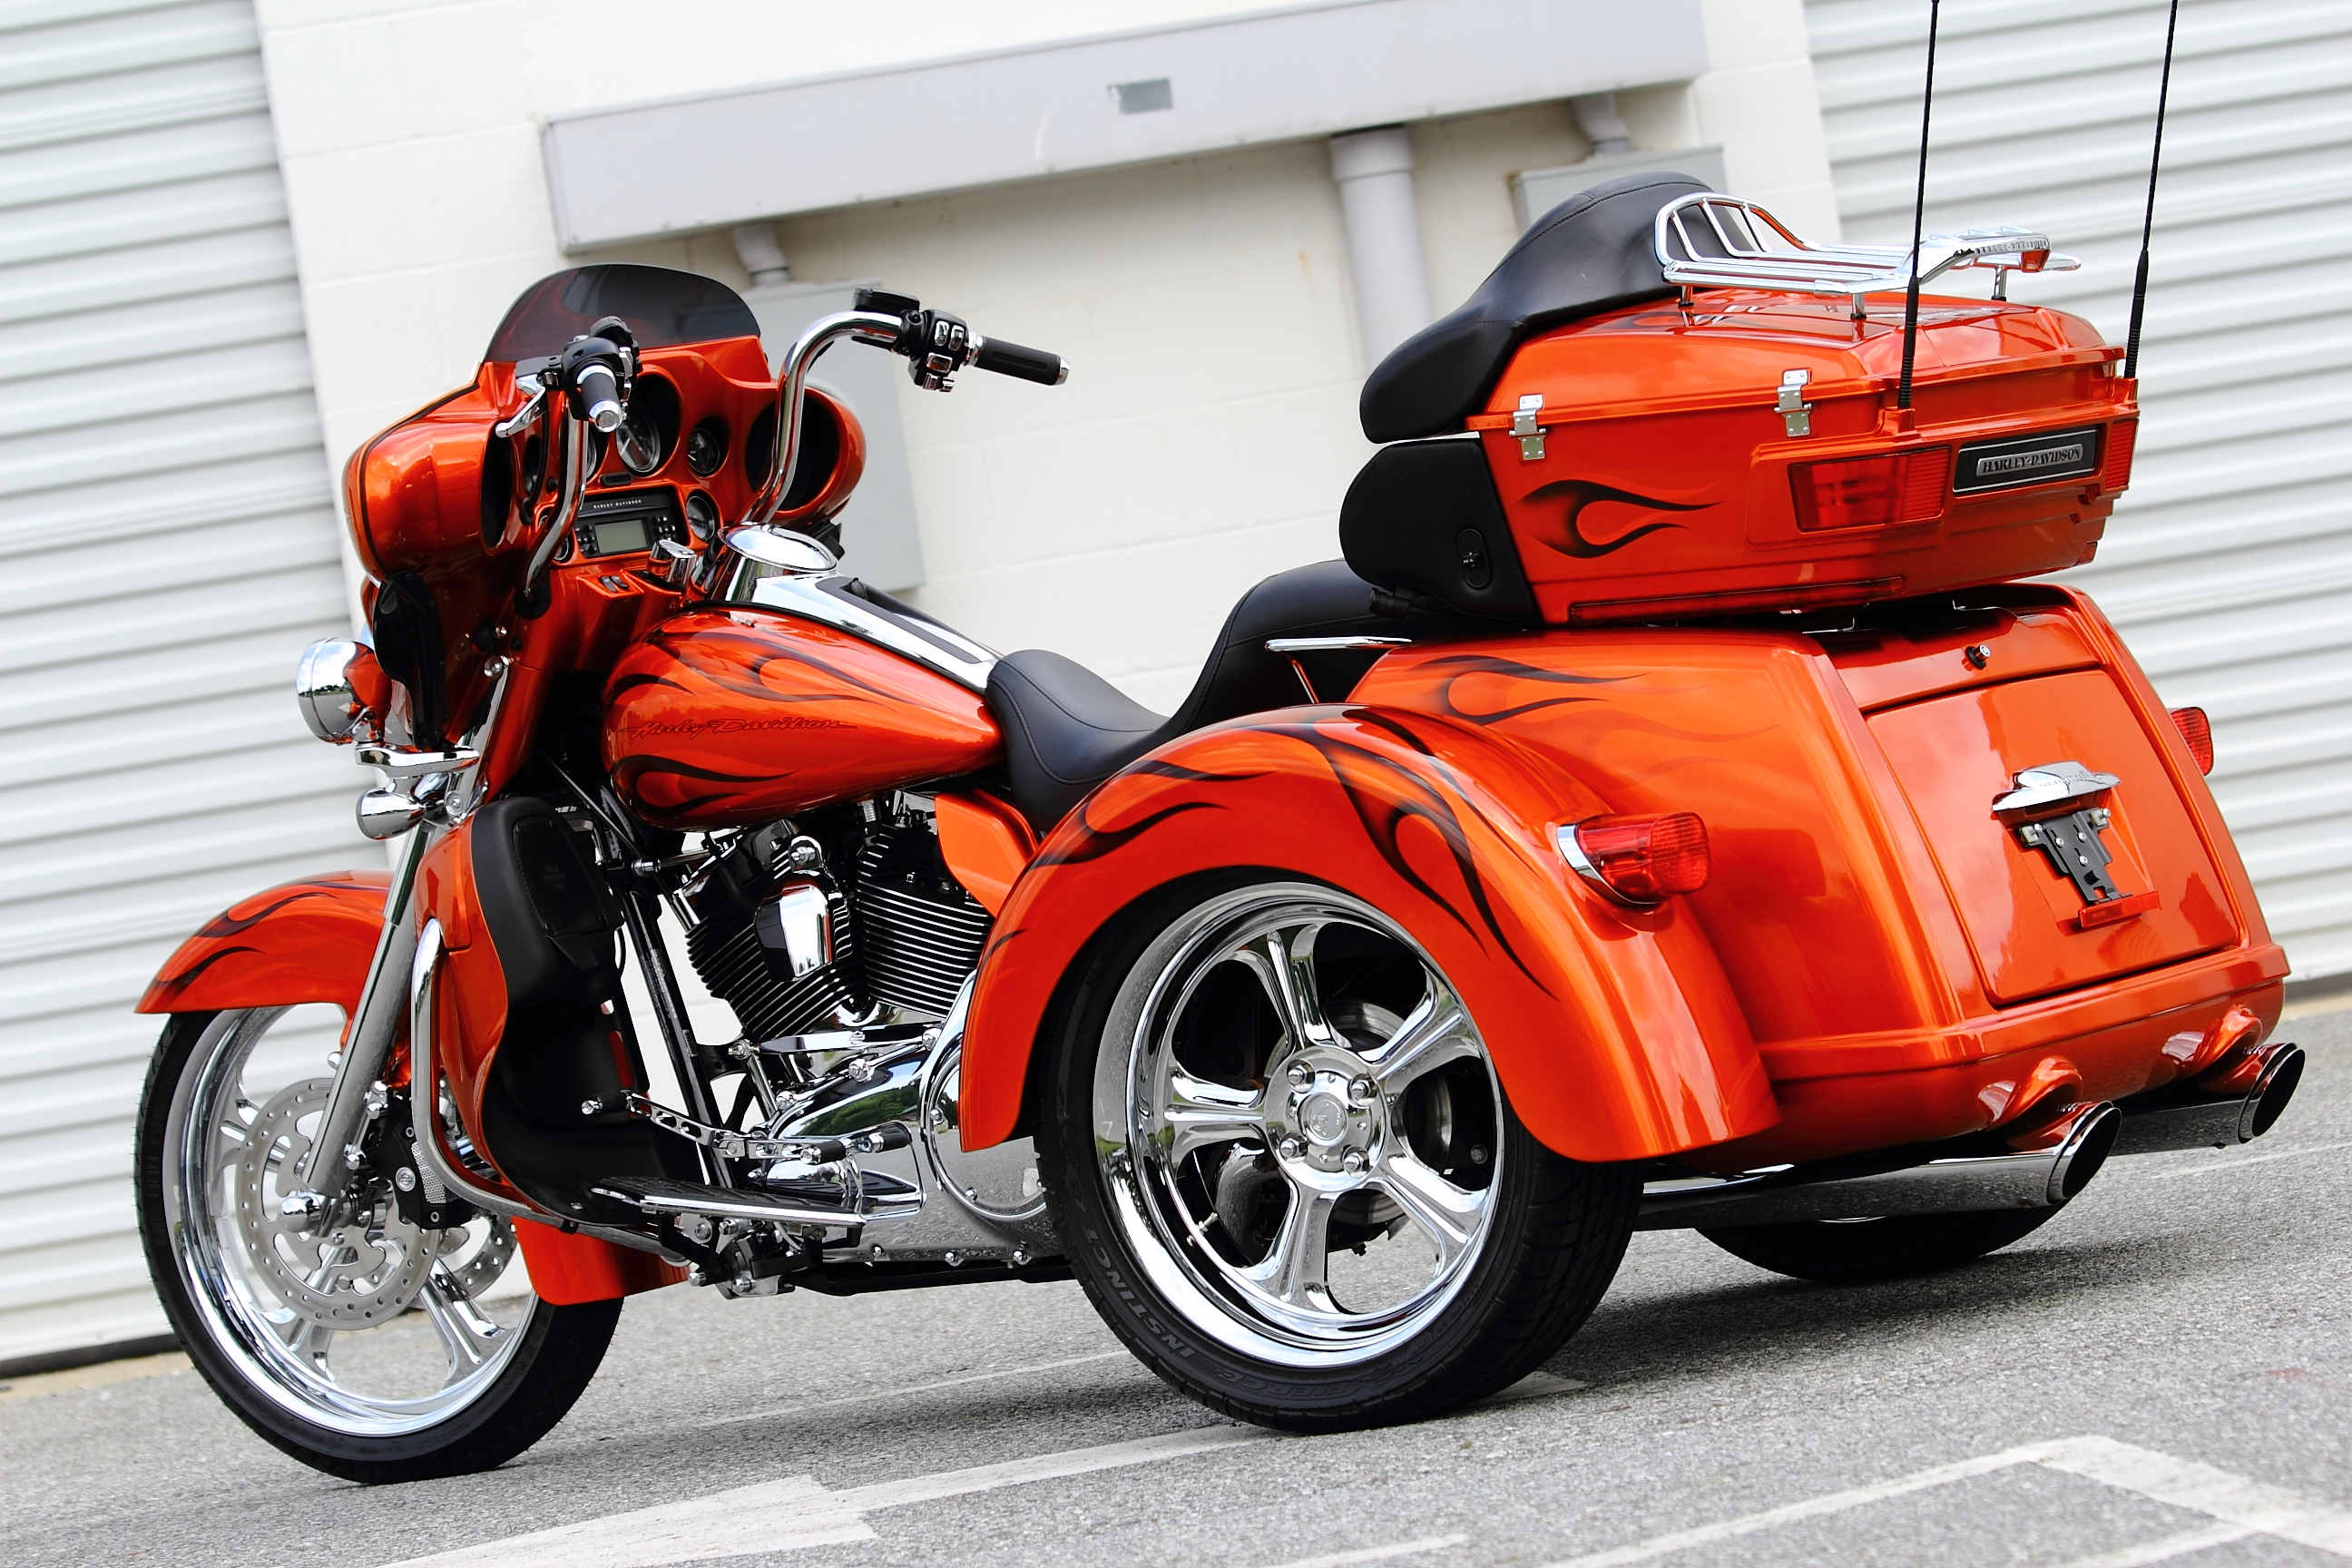 Harley Davidson Motorcycles With Reverse